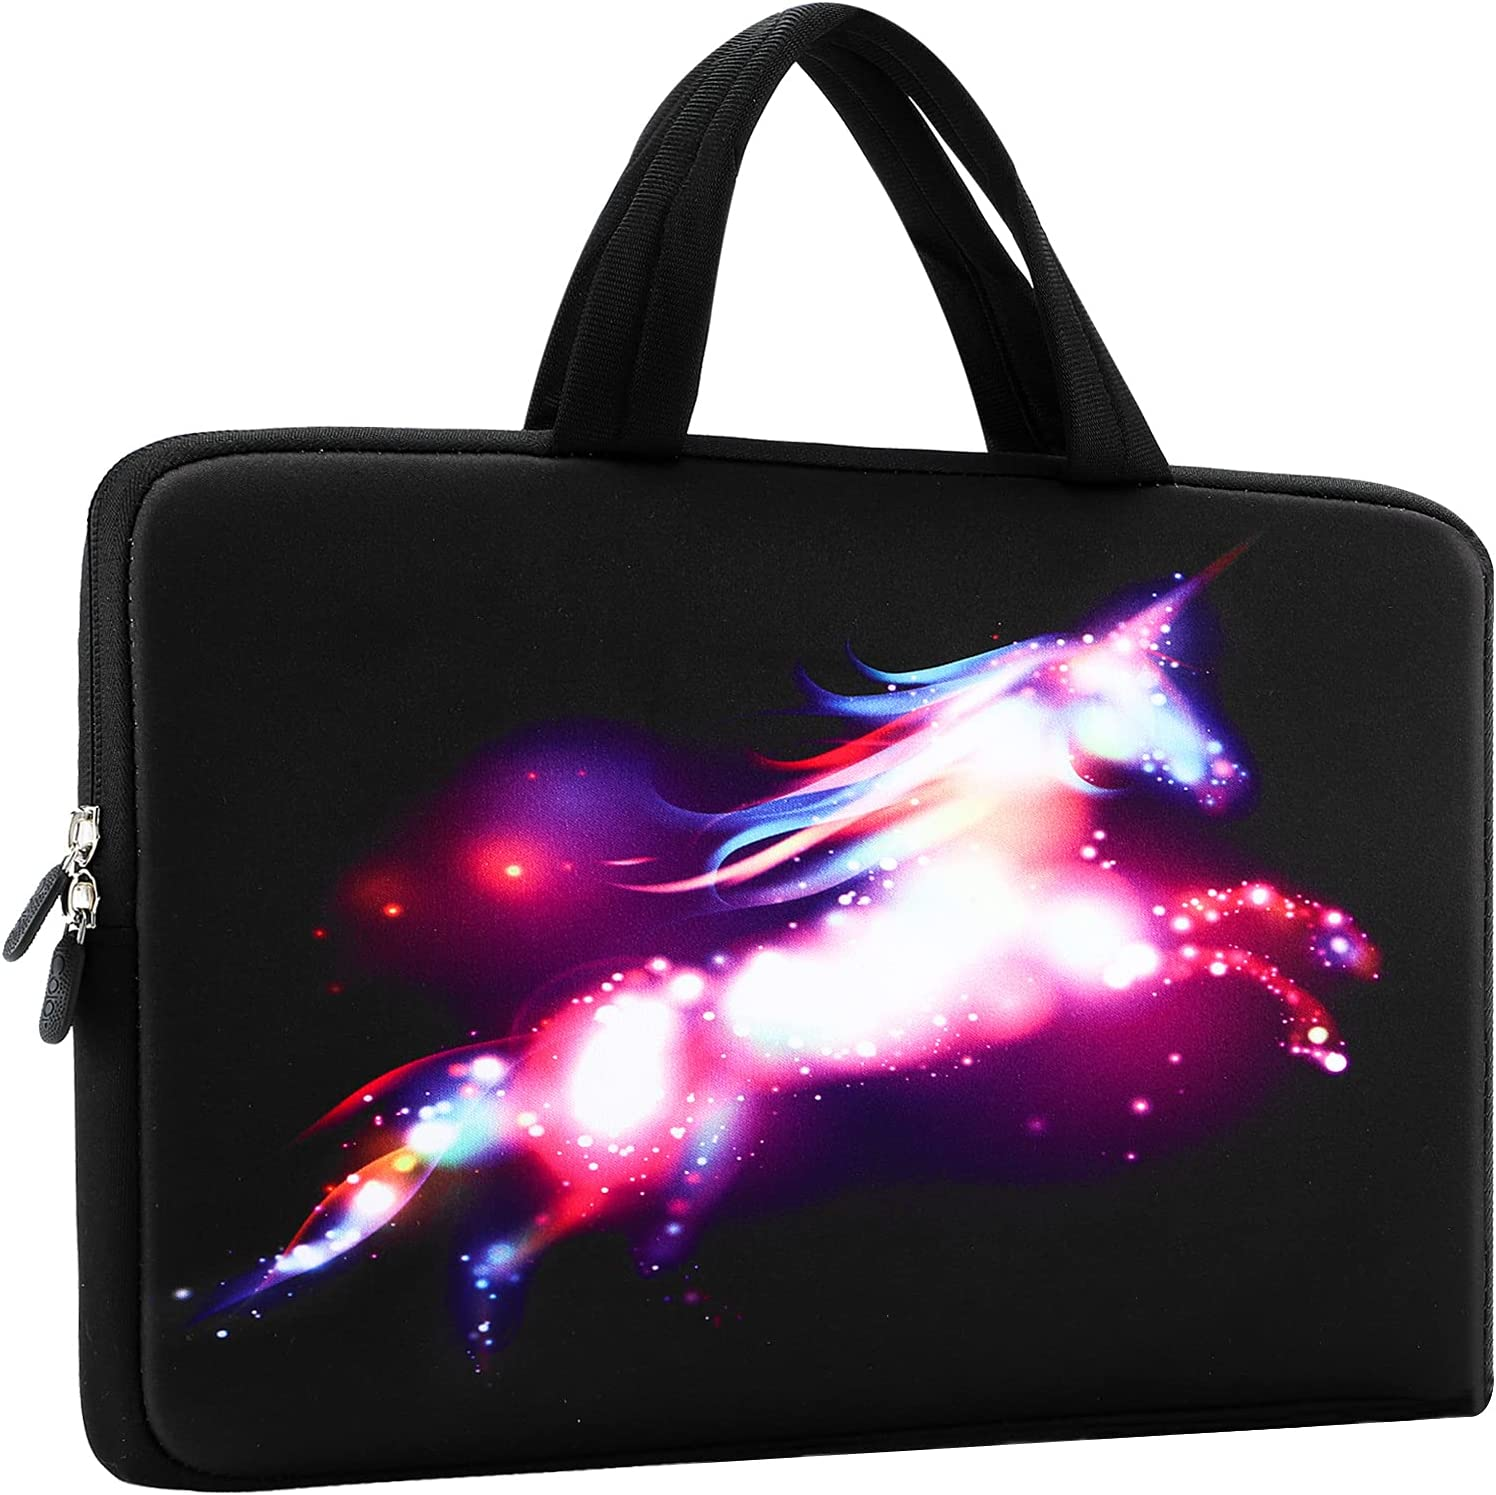 11.6 12 12.1 12.2 Inches Laptop Sleeve Carrying Bag Chromebook Cover Case, Neoprene Netbook/Notebook/Ultrabook Protective Briefcase Pouch Tote Fits Dell HP Google Acer Lenovo Asus